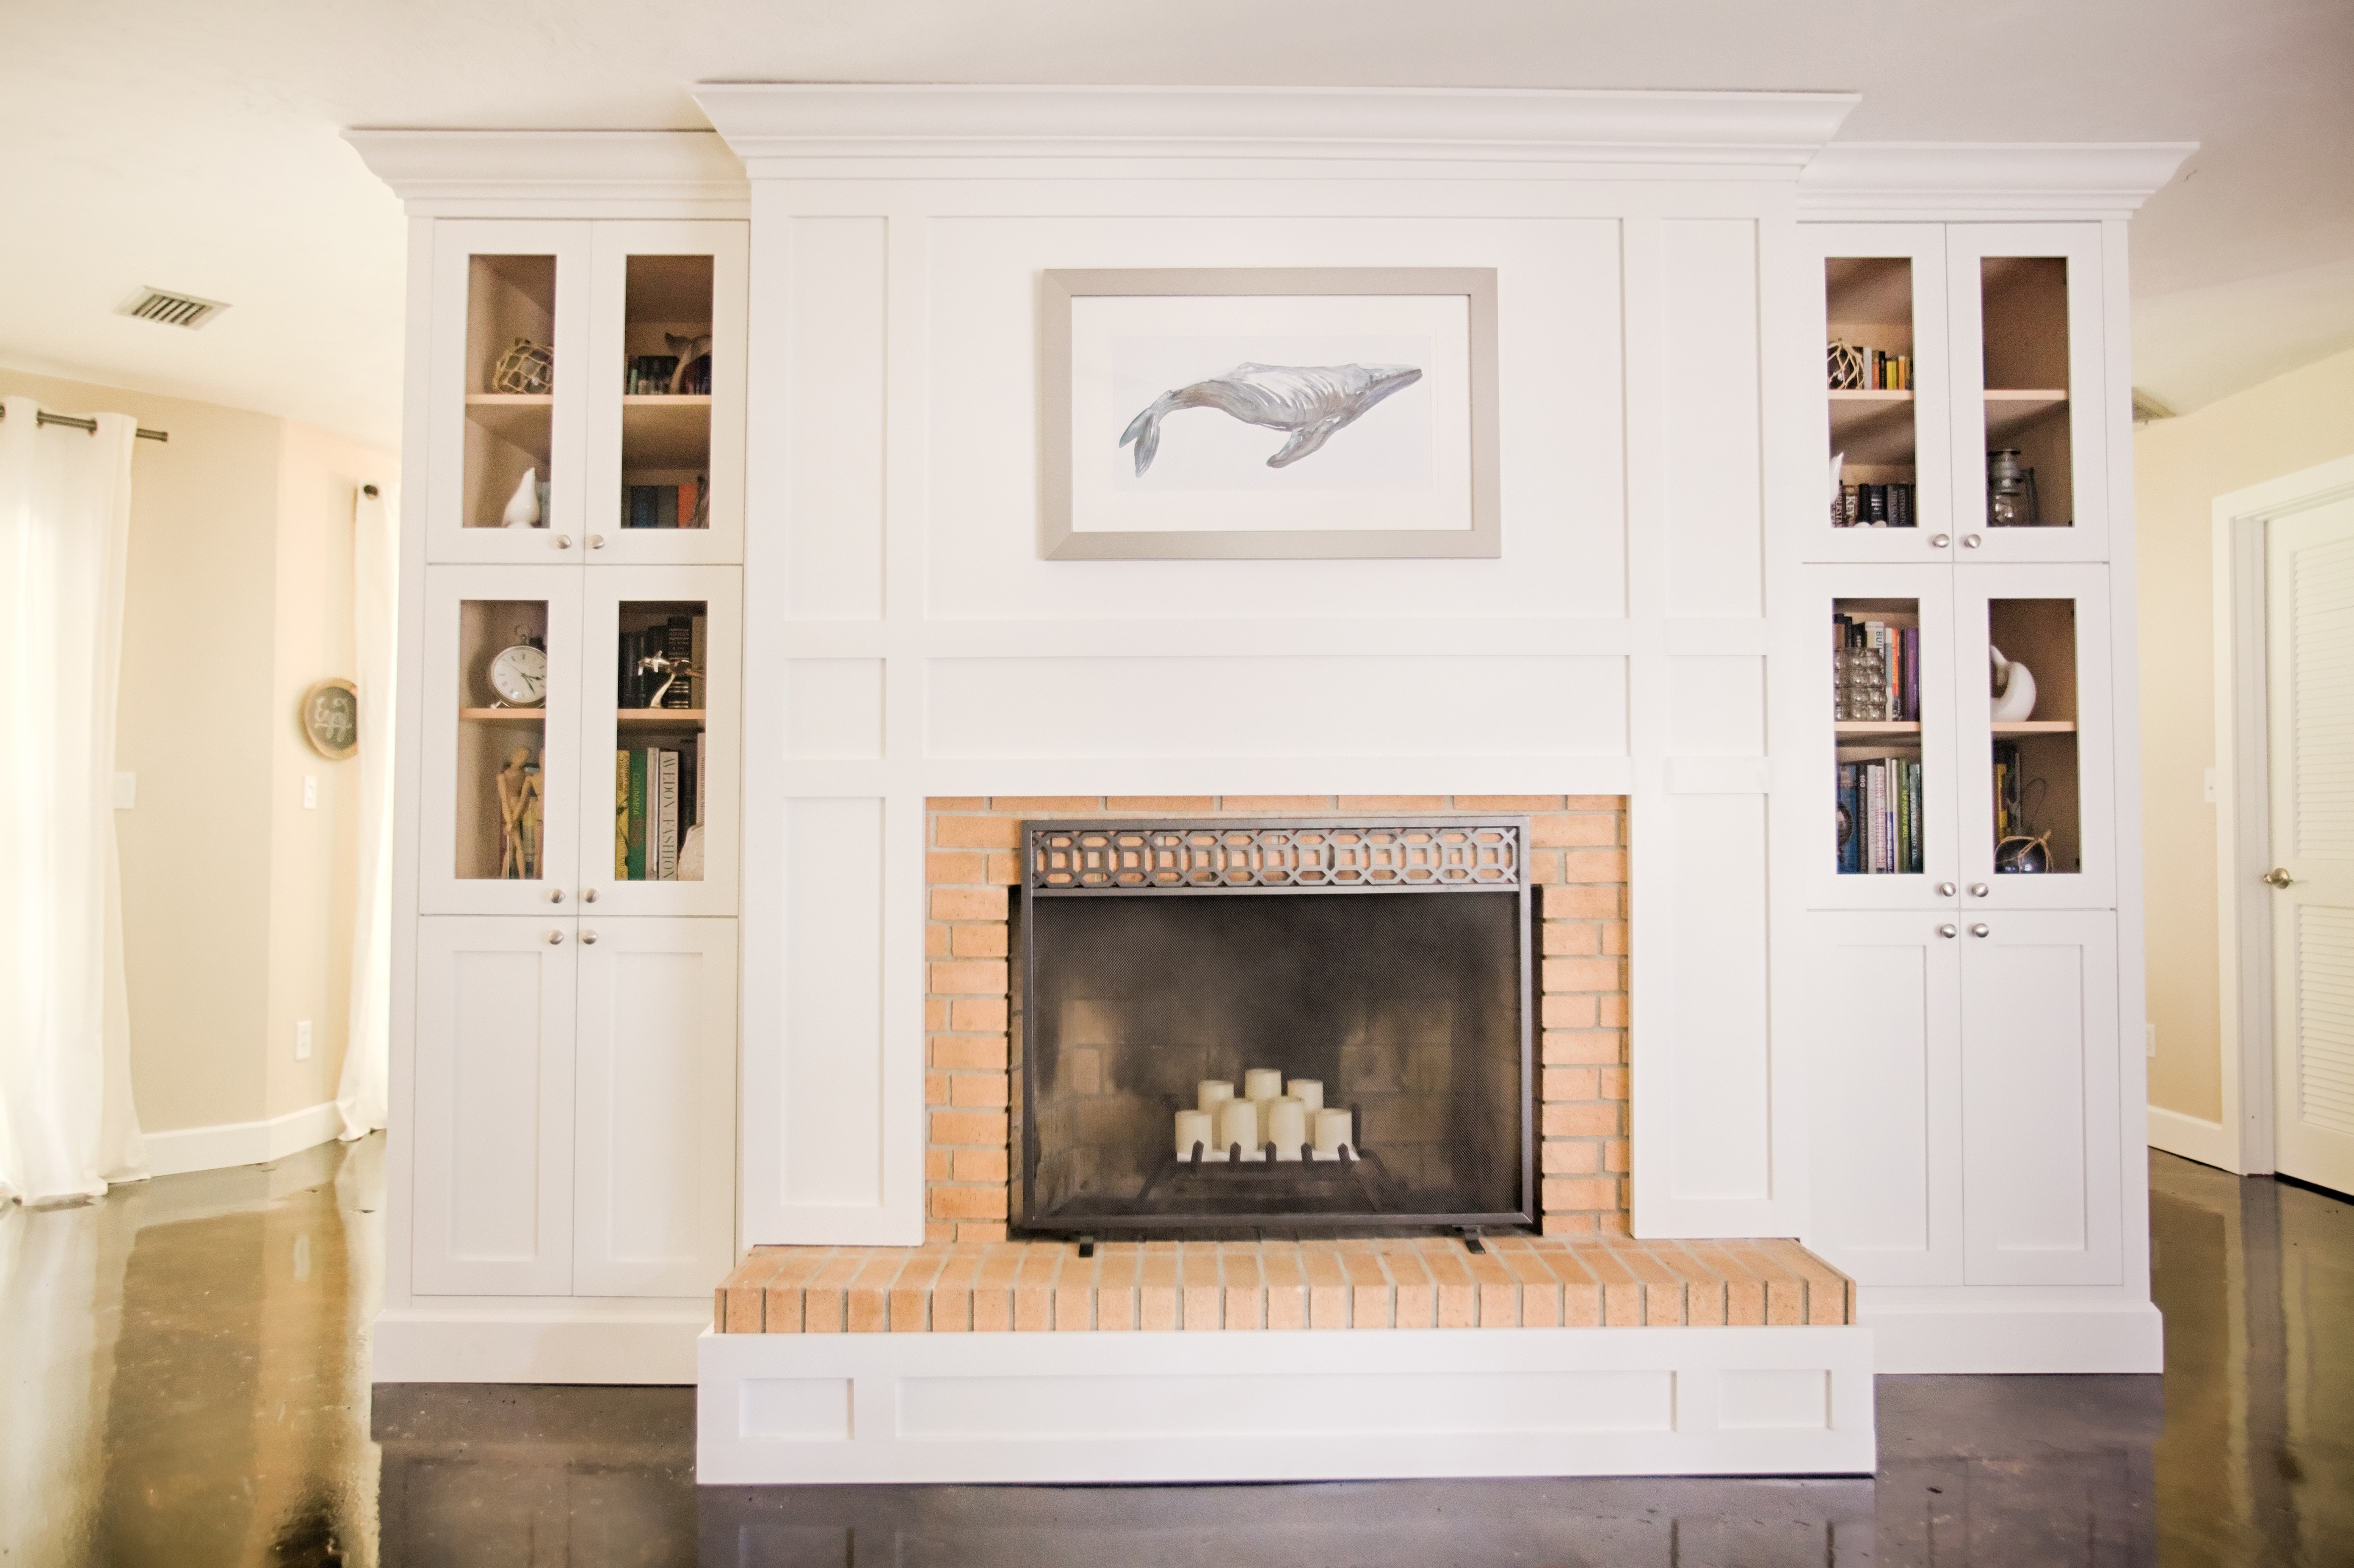 Built-in cabinets surrounding the fireplace finished with shaker trim